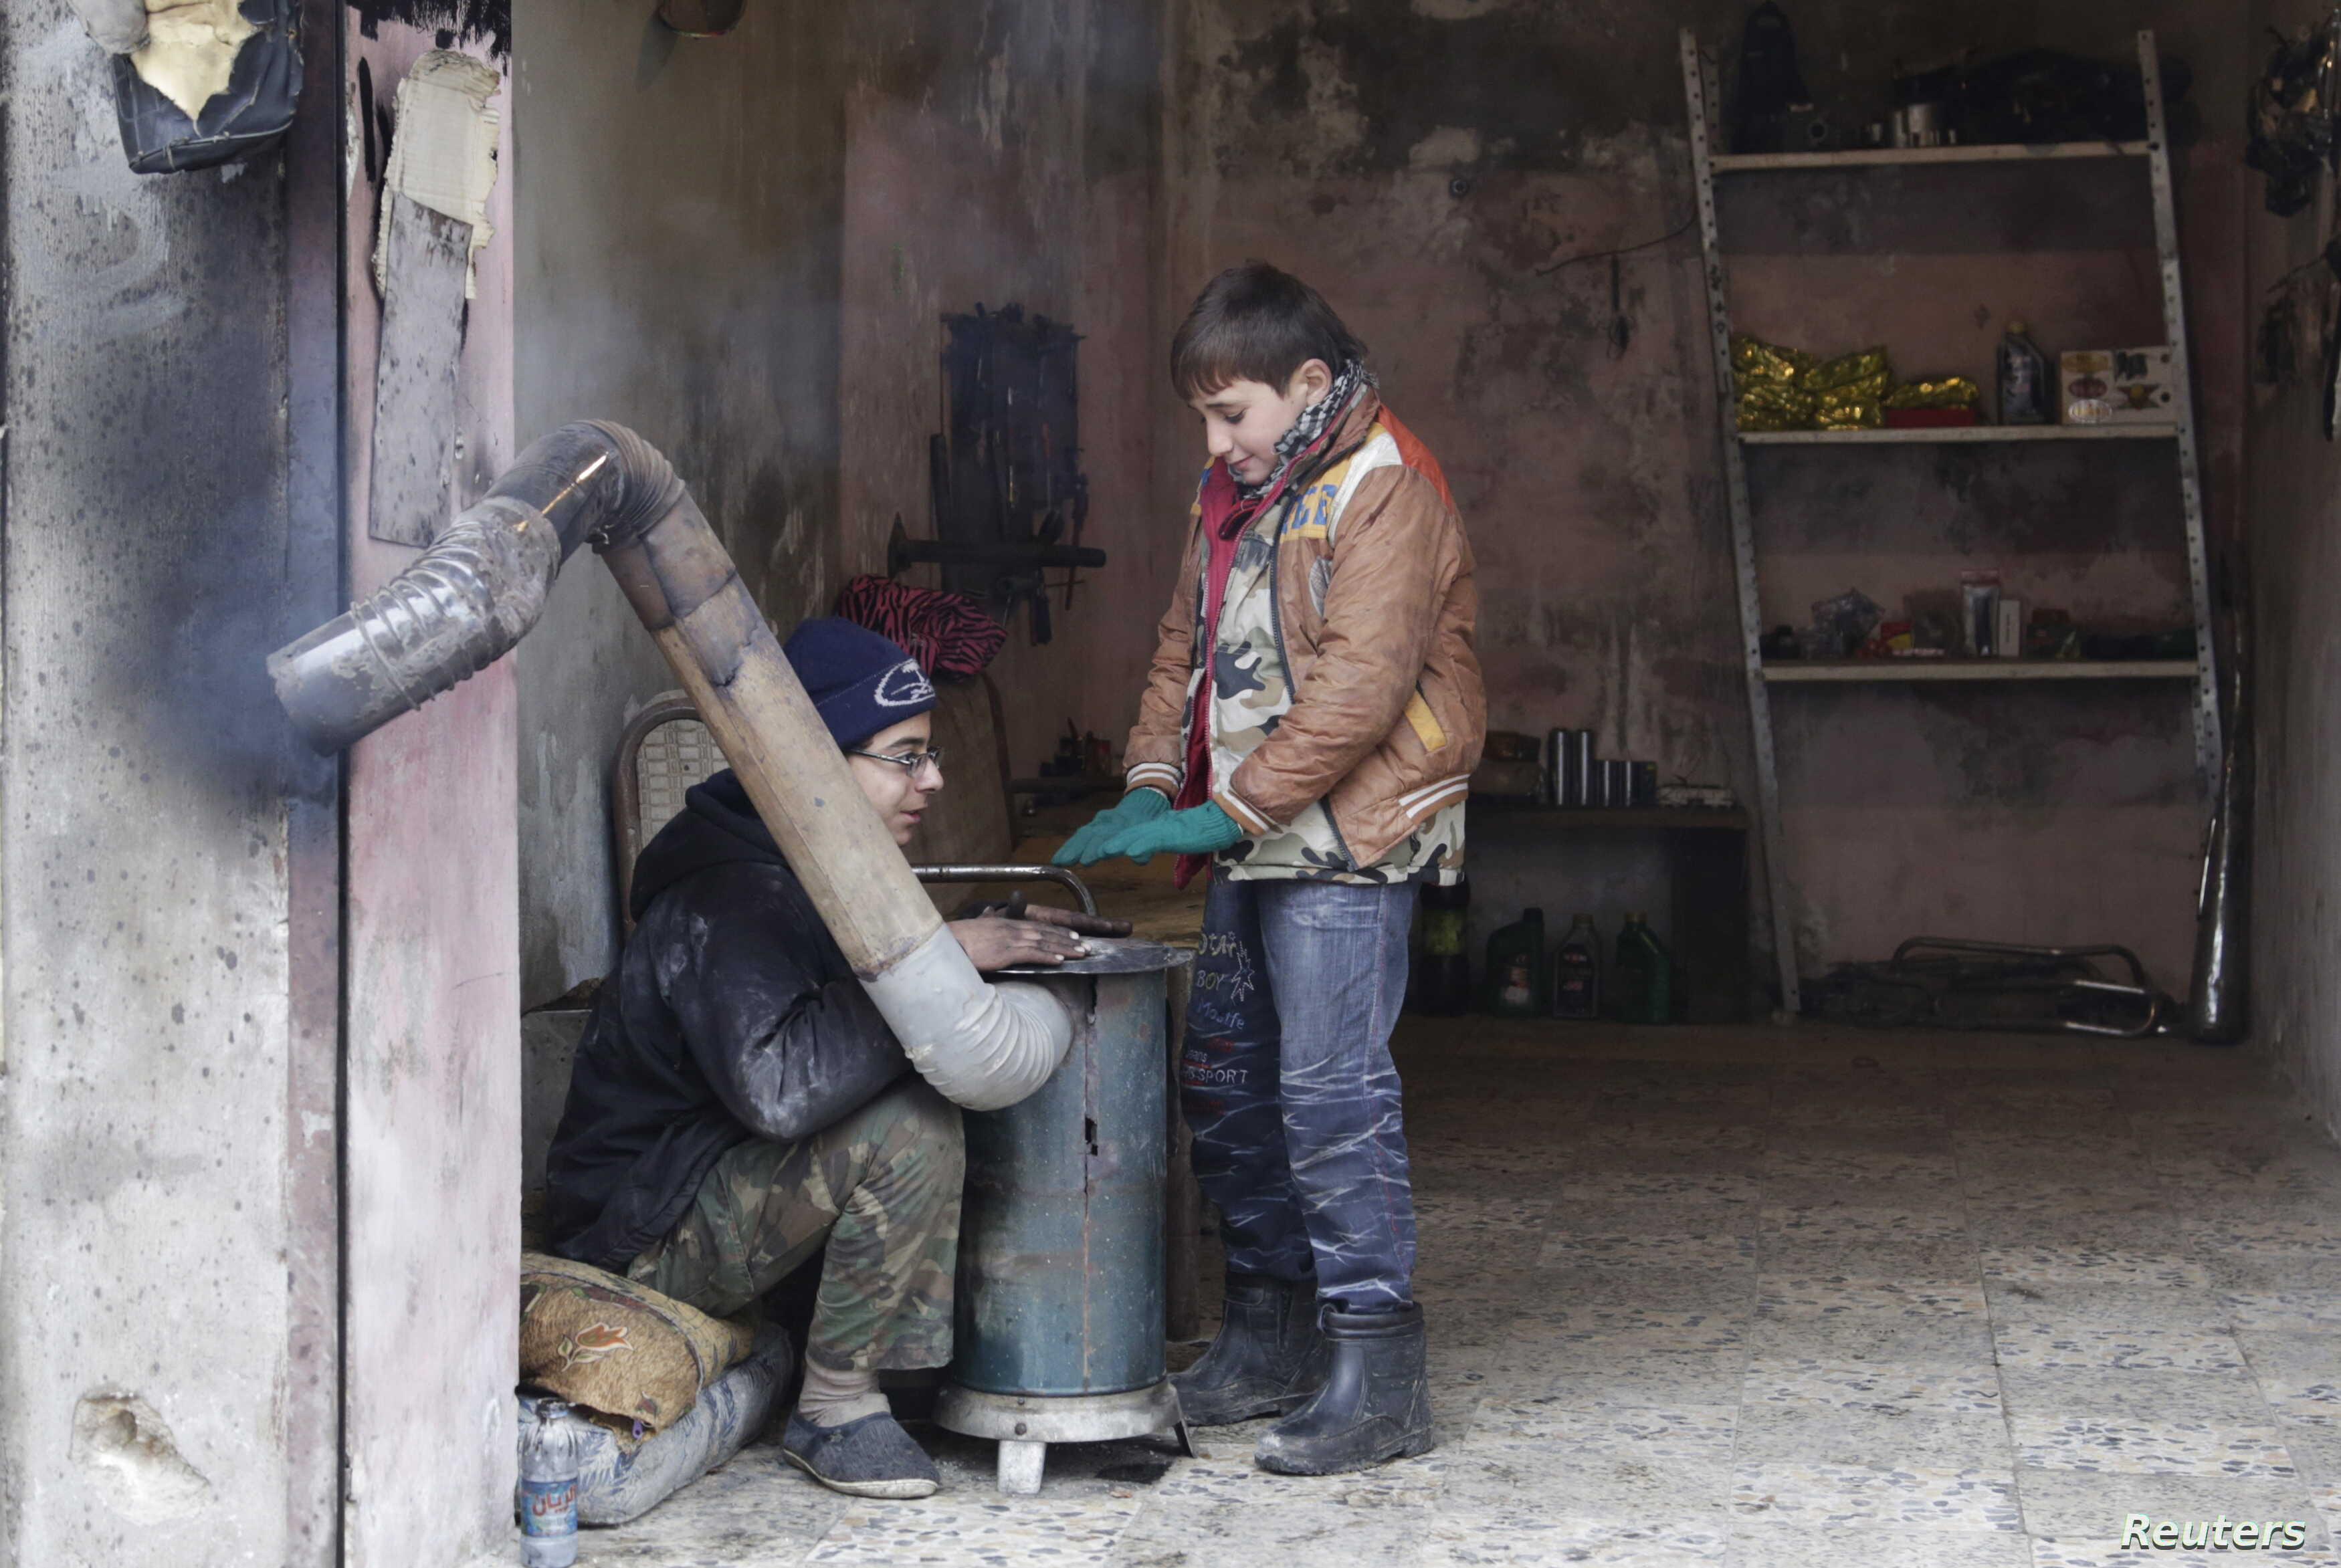 FILE - Boys warm themselves around a heater inside a shop during cold weather in the rebel-controlled area of Maaret al-Numan town in Idlib province, Syria, Jan 4, 2016.